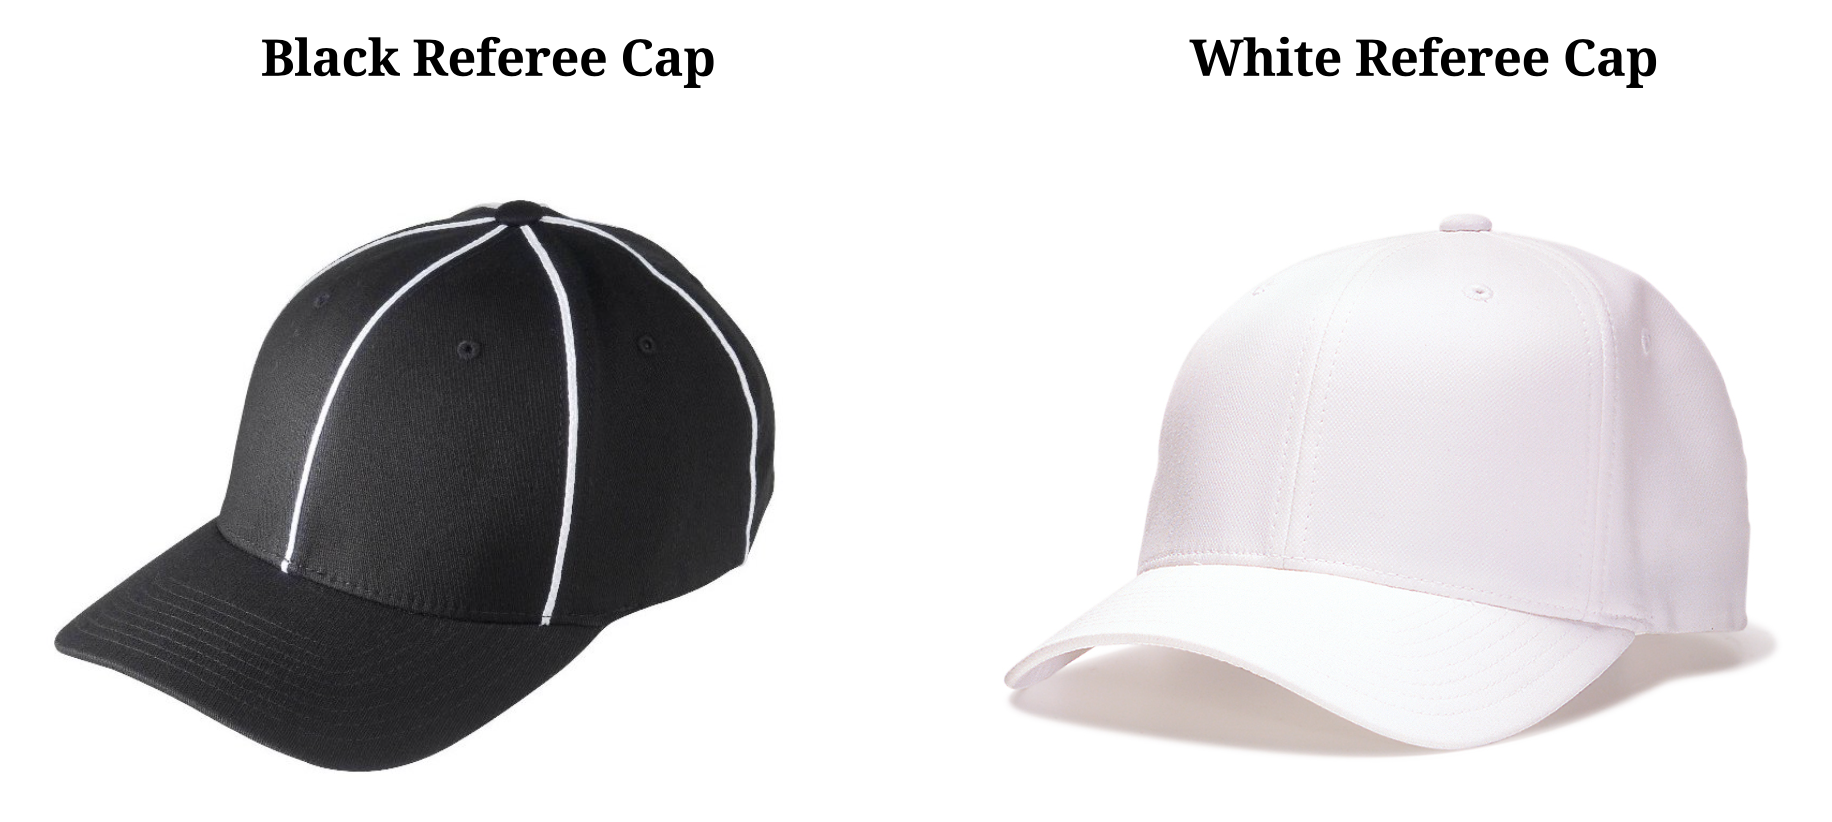 Referee Caps